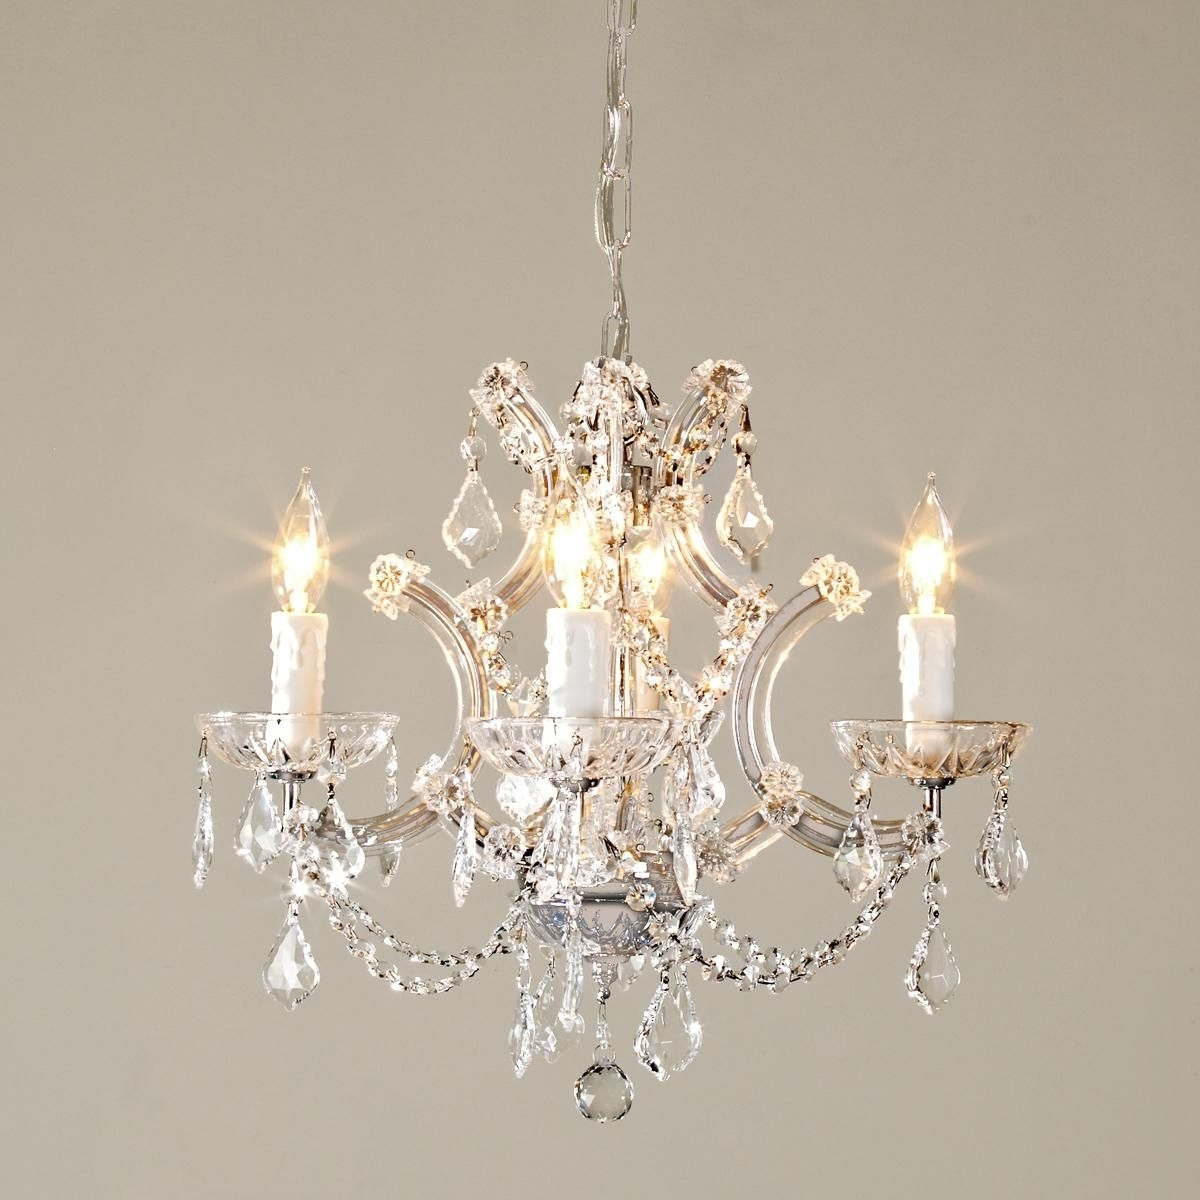 Widely Used Short Chandelier Lights With Round Crystal Chandelier (View 14 of 15)